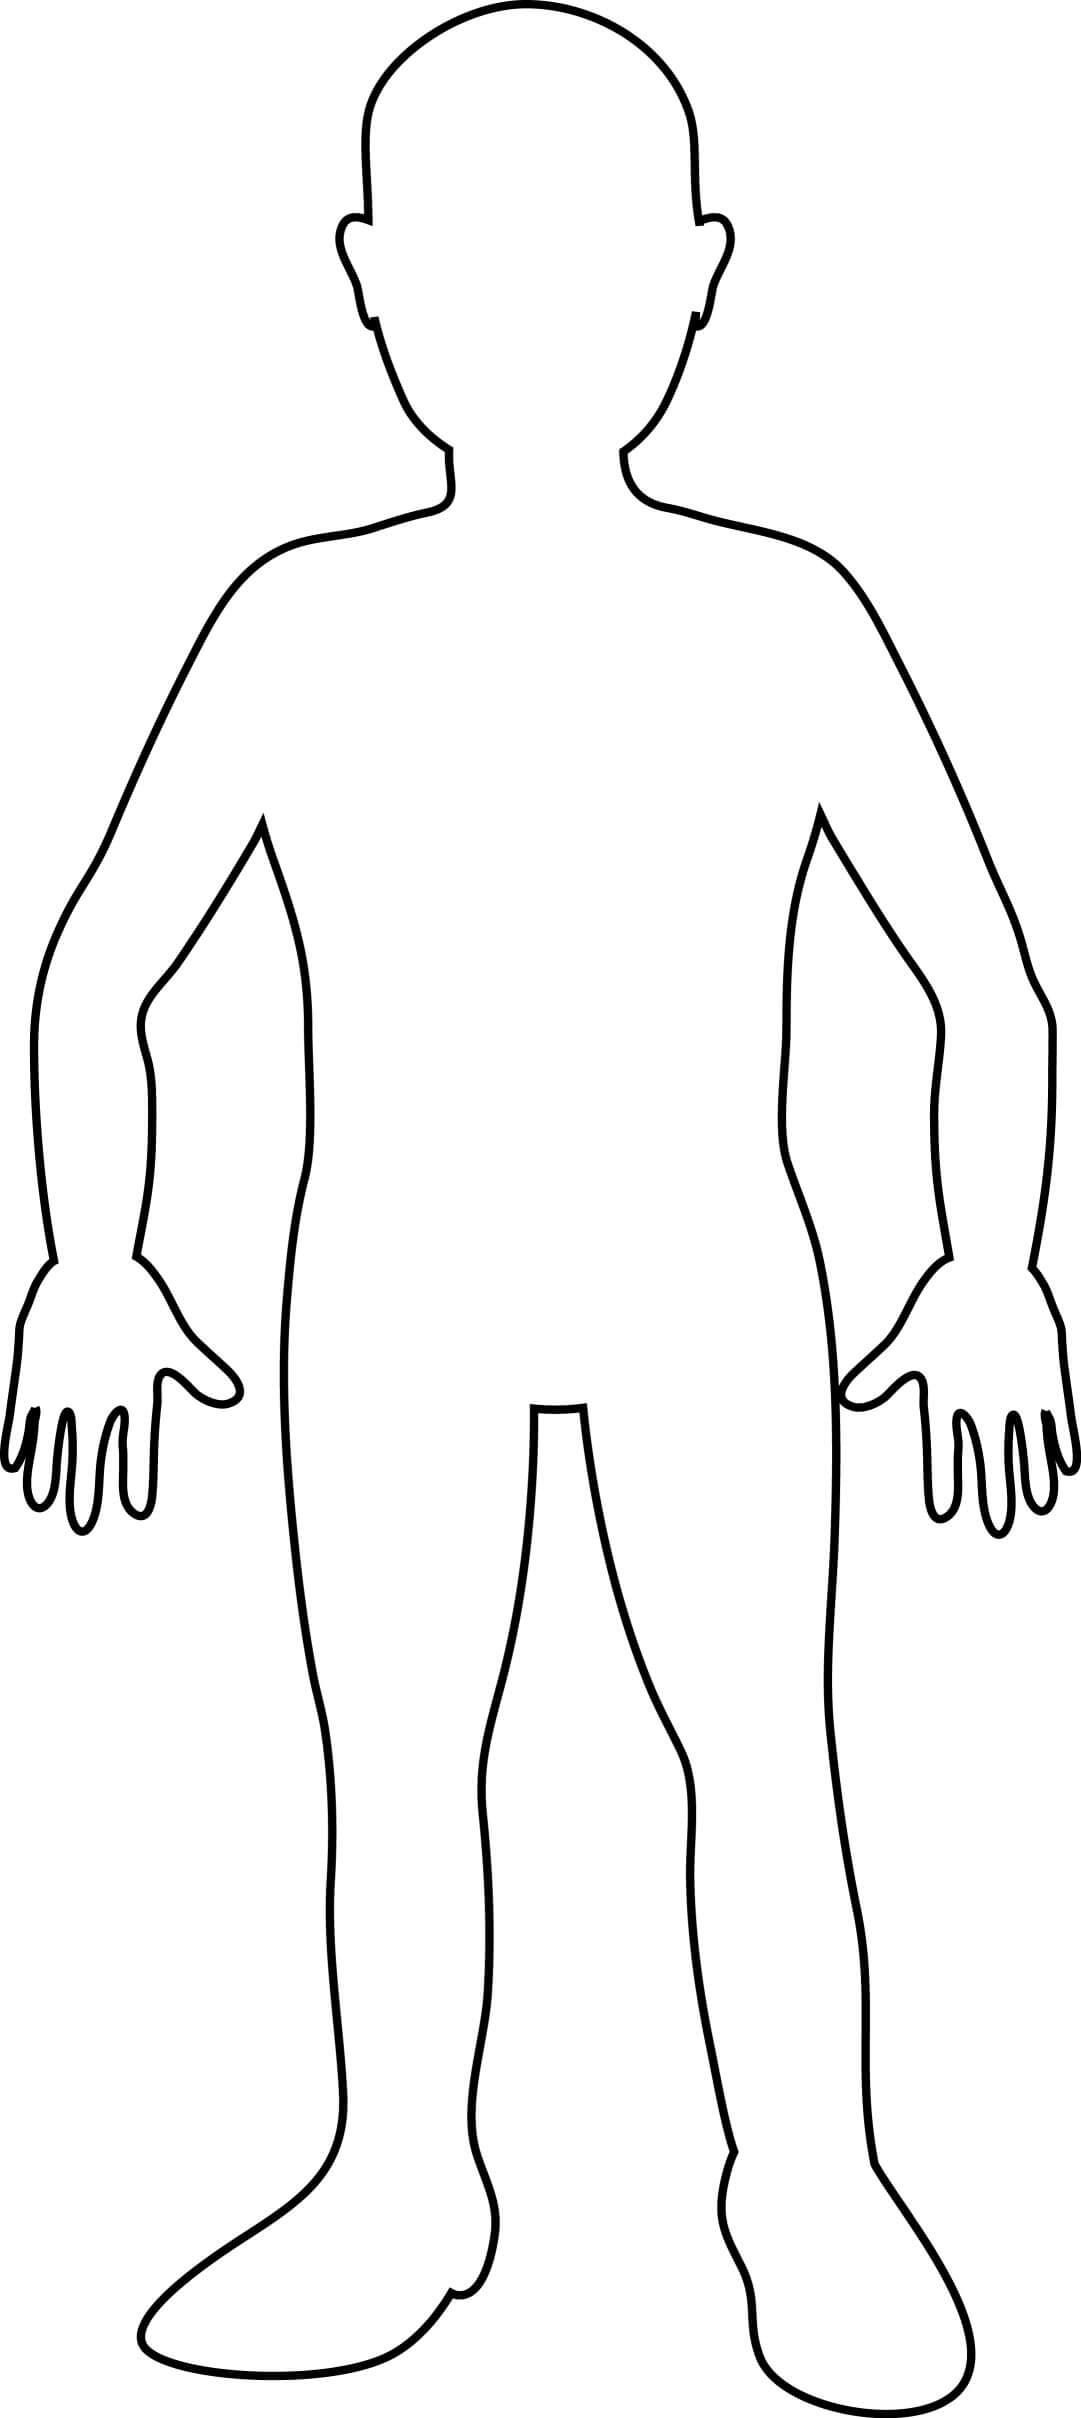 Free Blank Person Outline, Download Free Clip Art, Free Clip With Blank Body Map Template